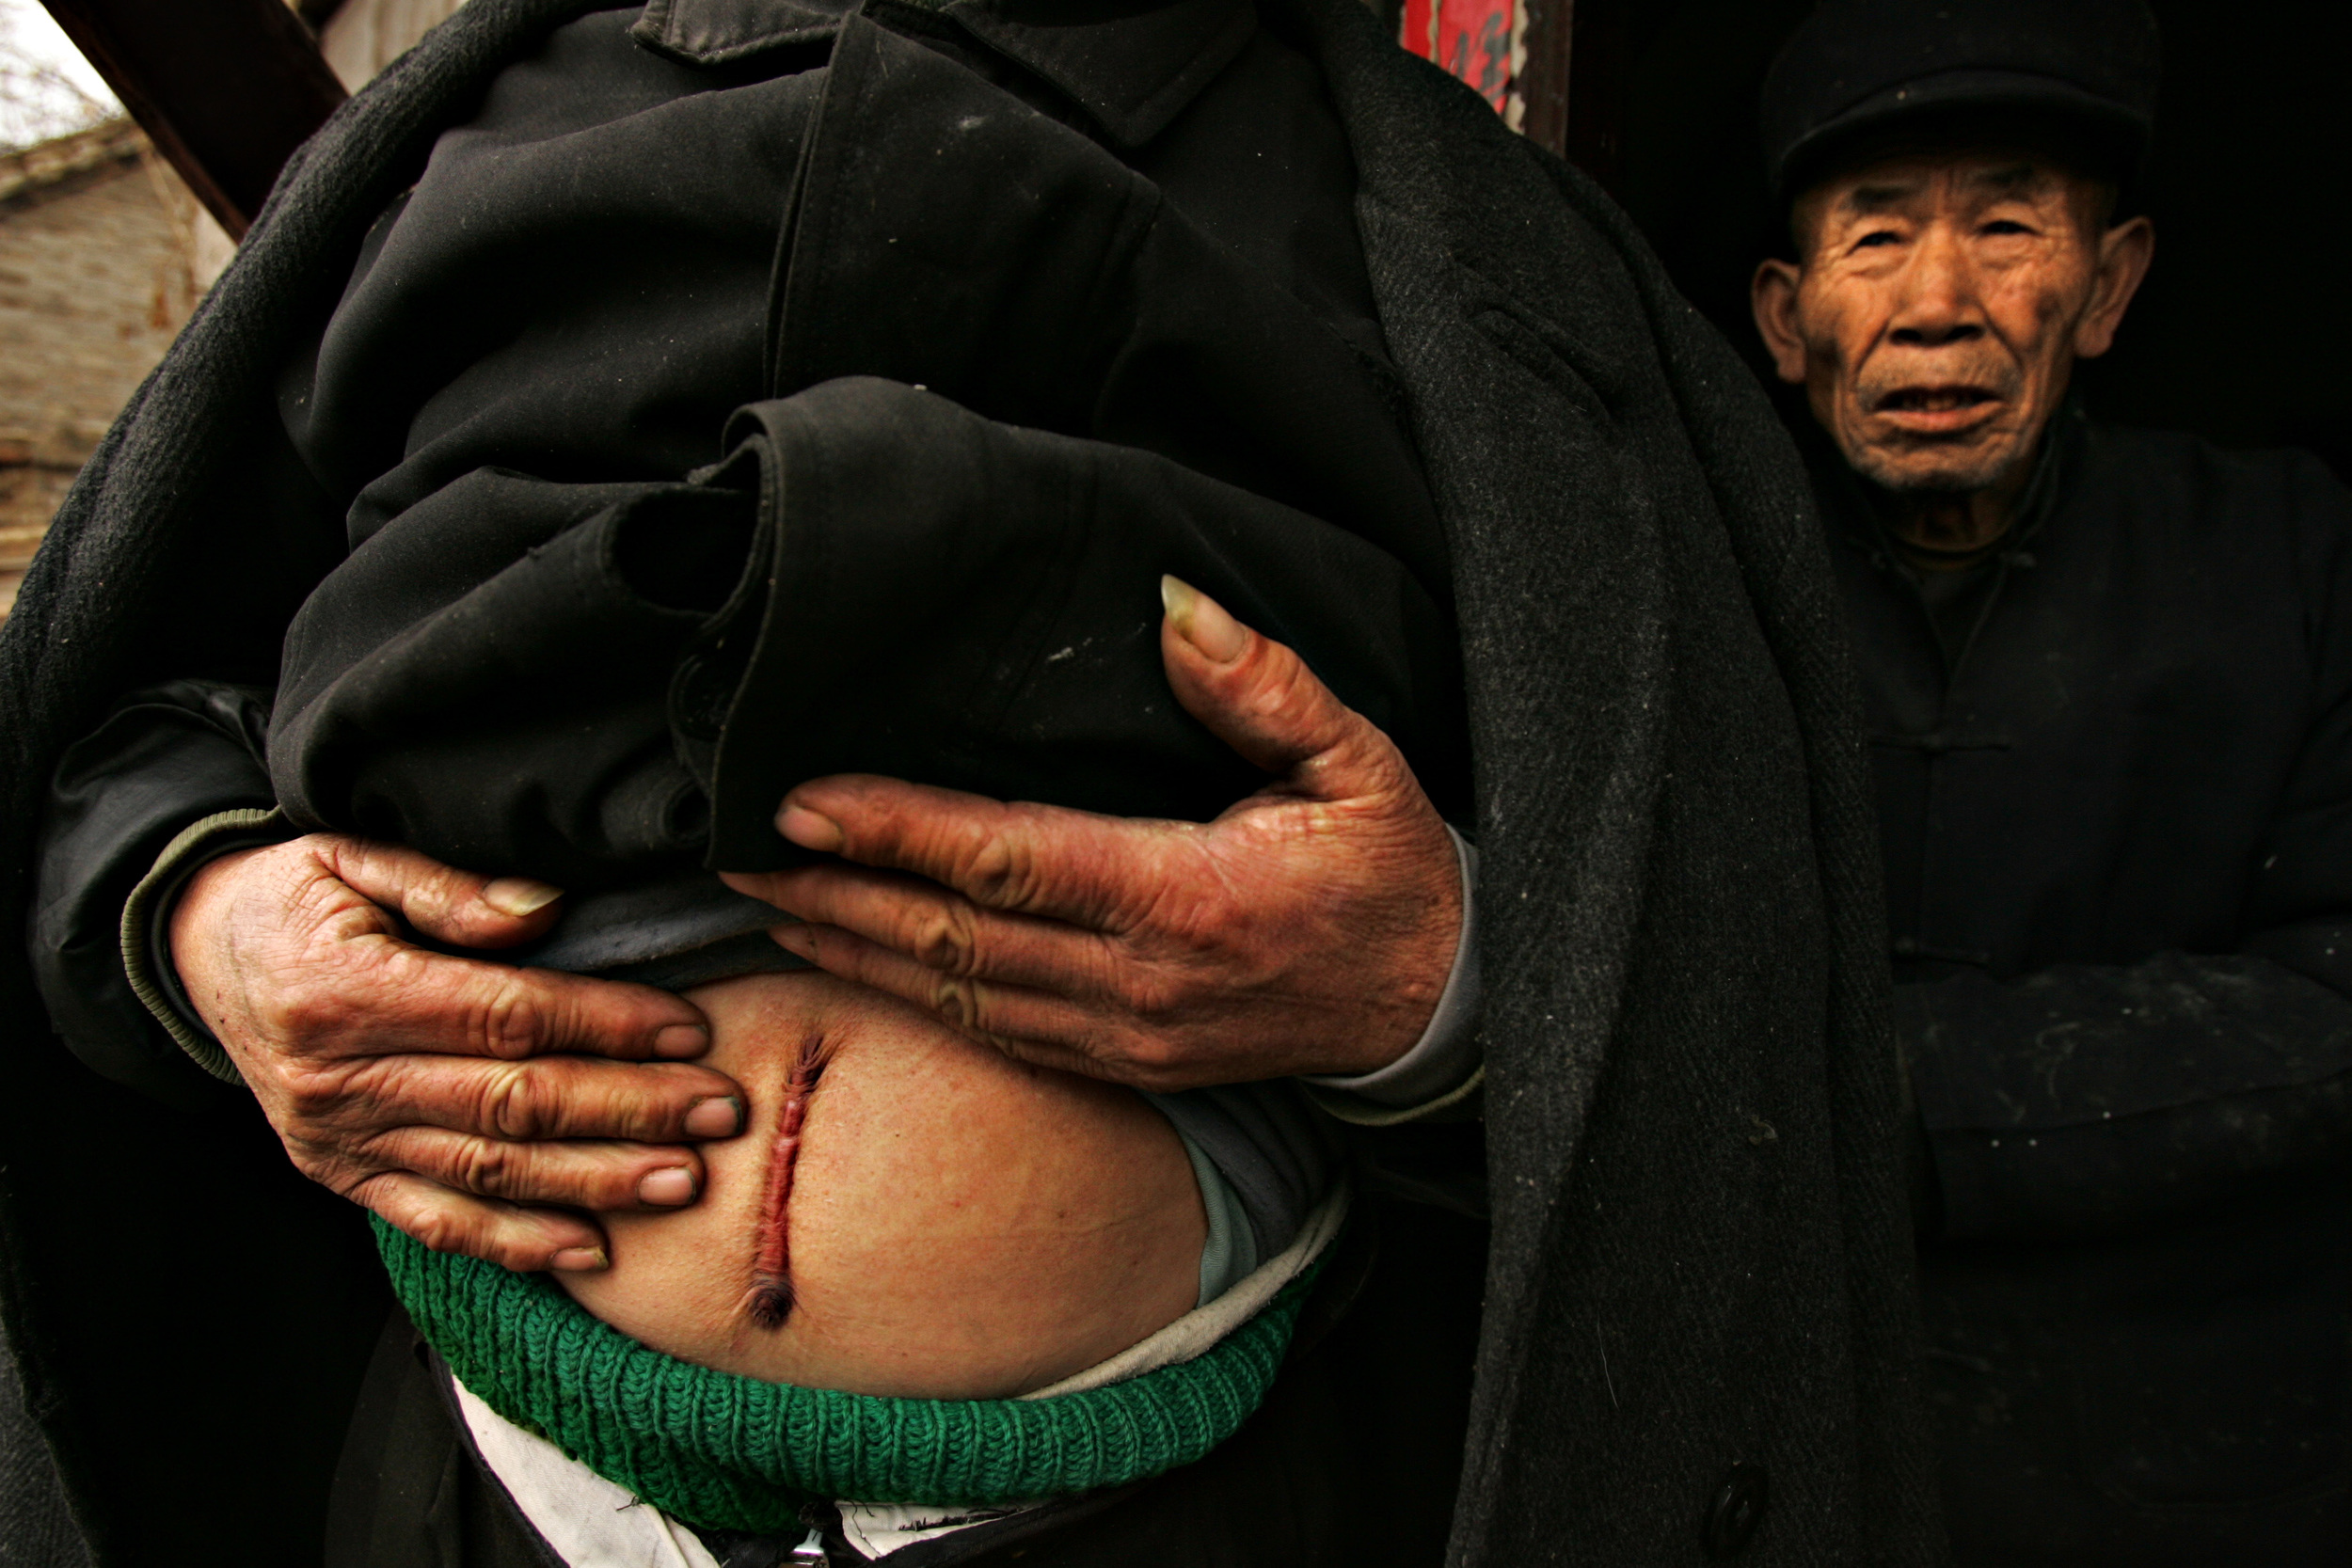 Wang Zi Qing, 60, shows the scar where a tumor was removed from his stomach. He used to be a fisherman but is too sick to work anymore. His older and younger brother died of cancer within a month of each other.